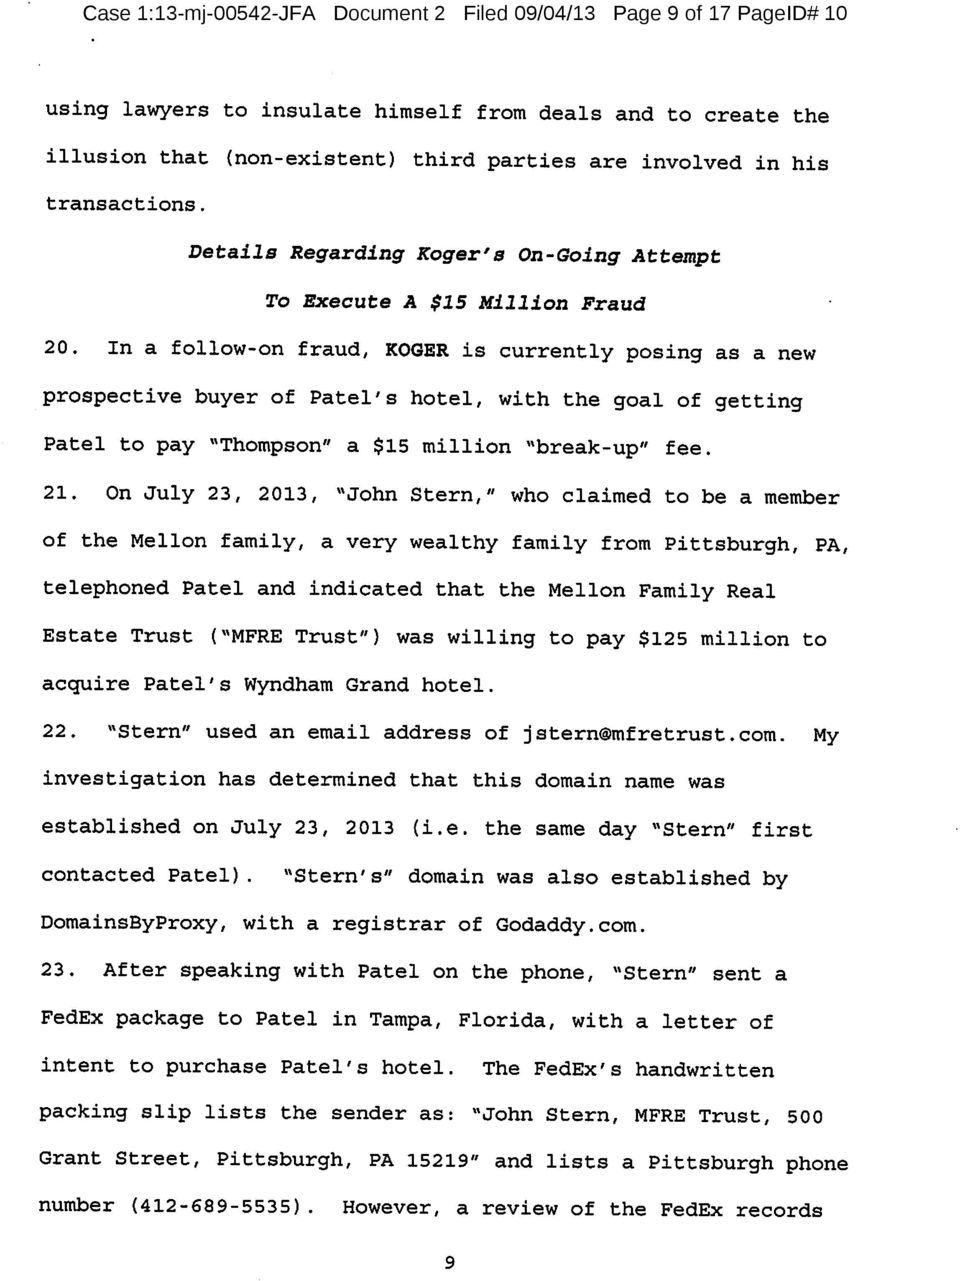 "In a follow-on fraud, ROGER is currently posing as a new prospective buyer of Patel's hotel, with the goal of getting Patel to pay ""Thompson"" a $15 million ""break-up"" fee. 21."